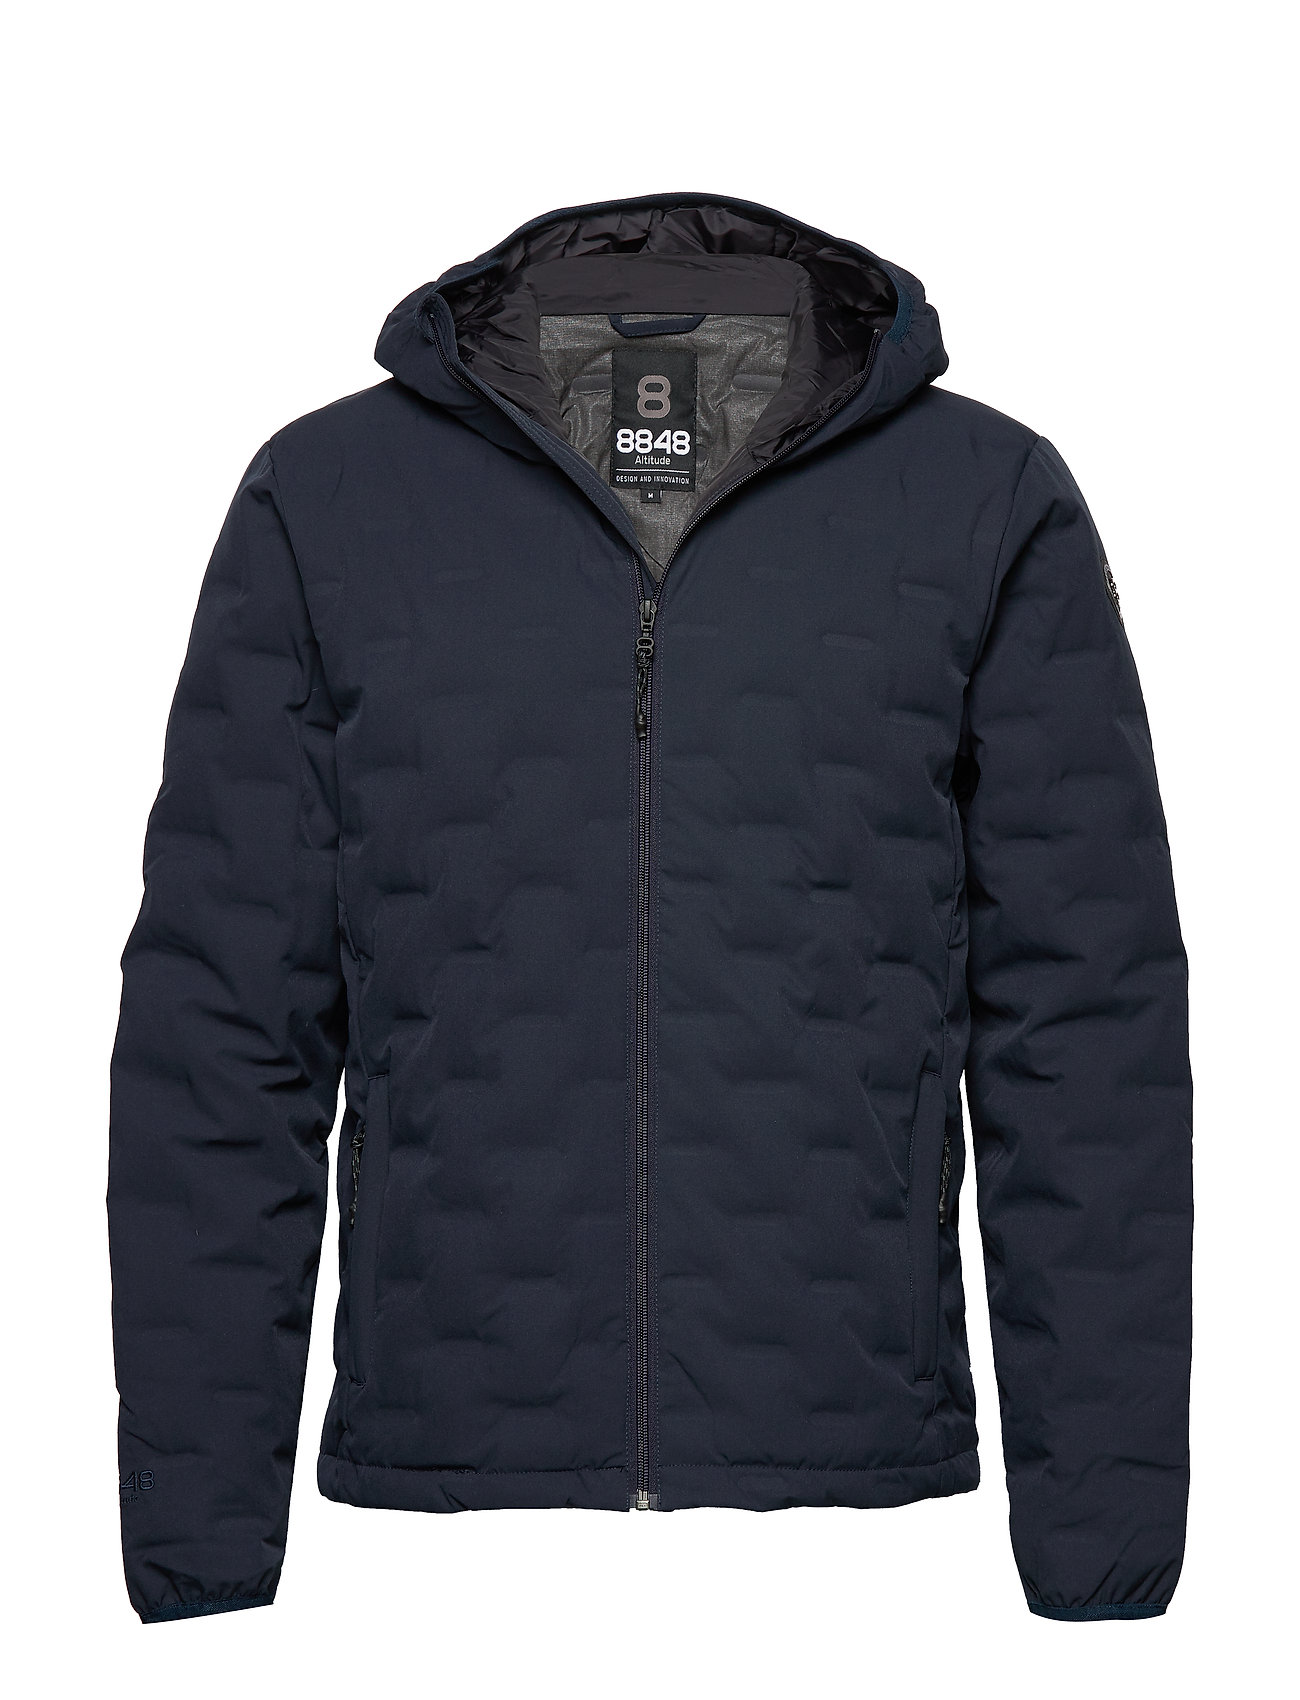 8848 Altitude Ritz Jacket - NAVY